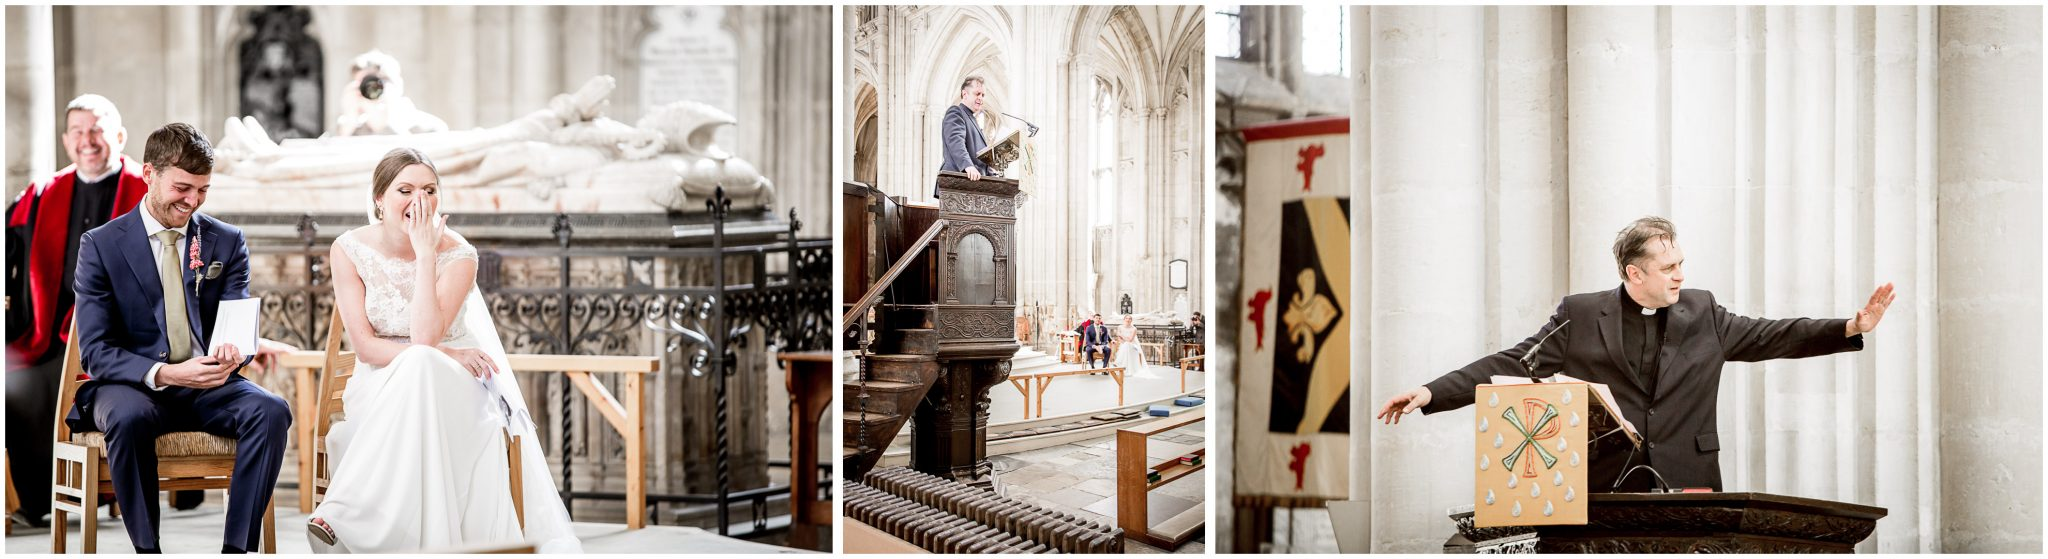 winchester cathedral wedding photography ceremony